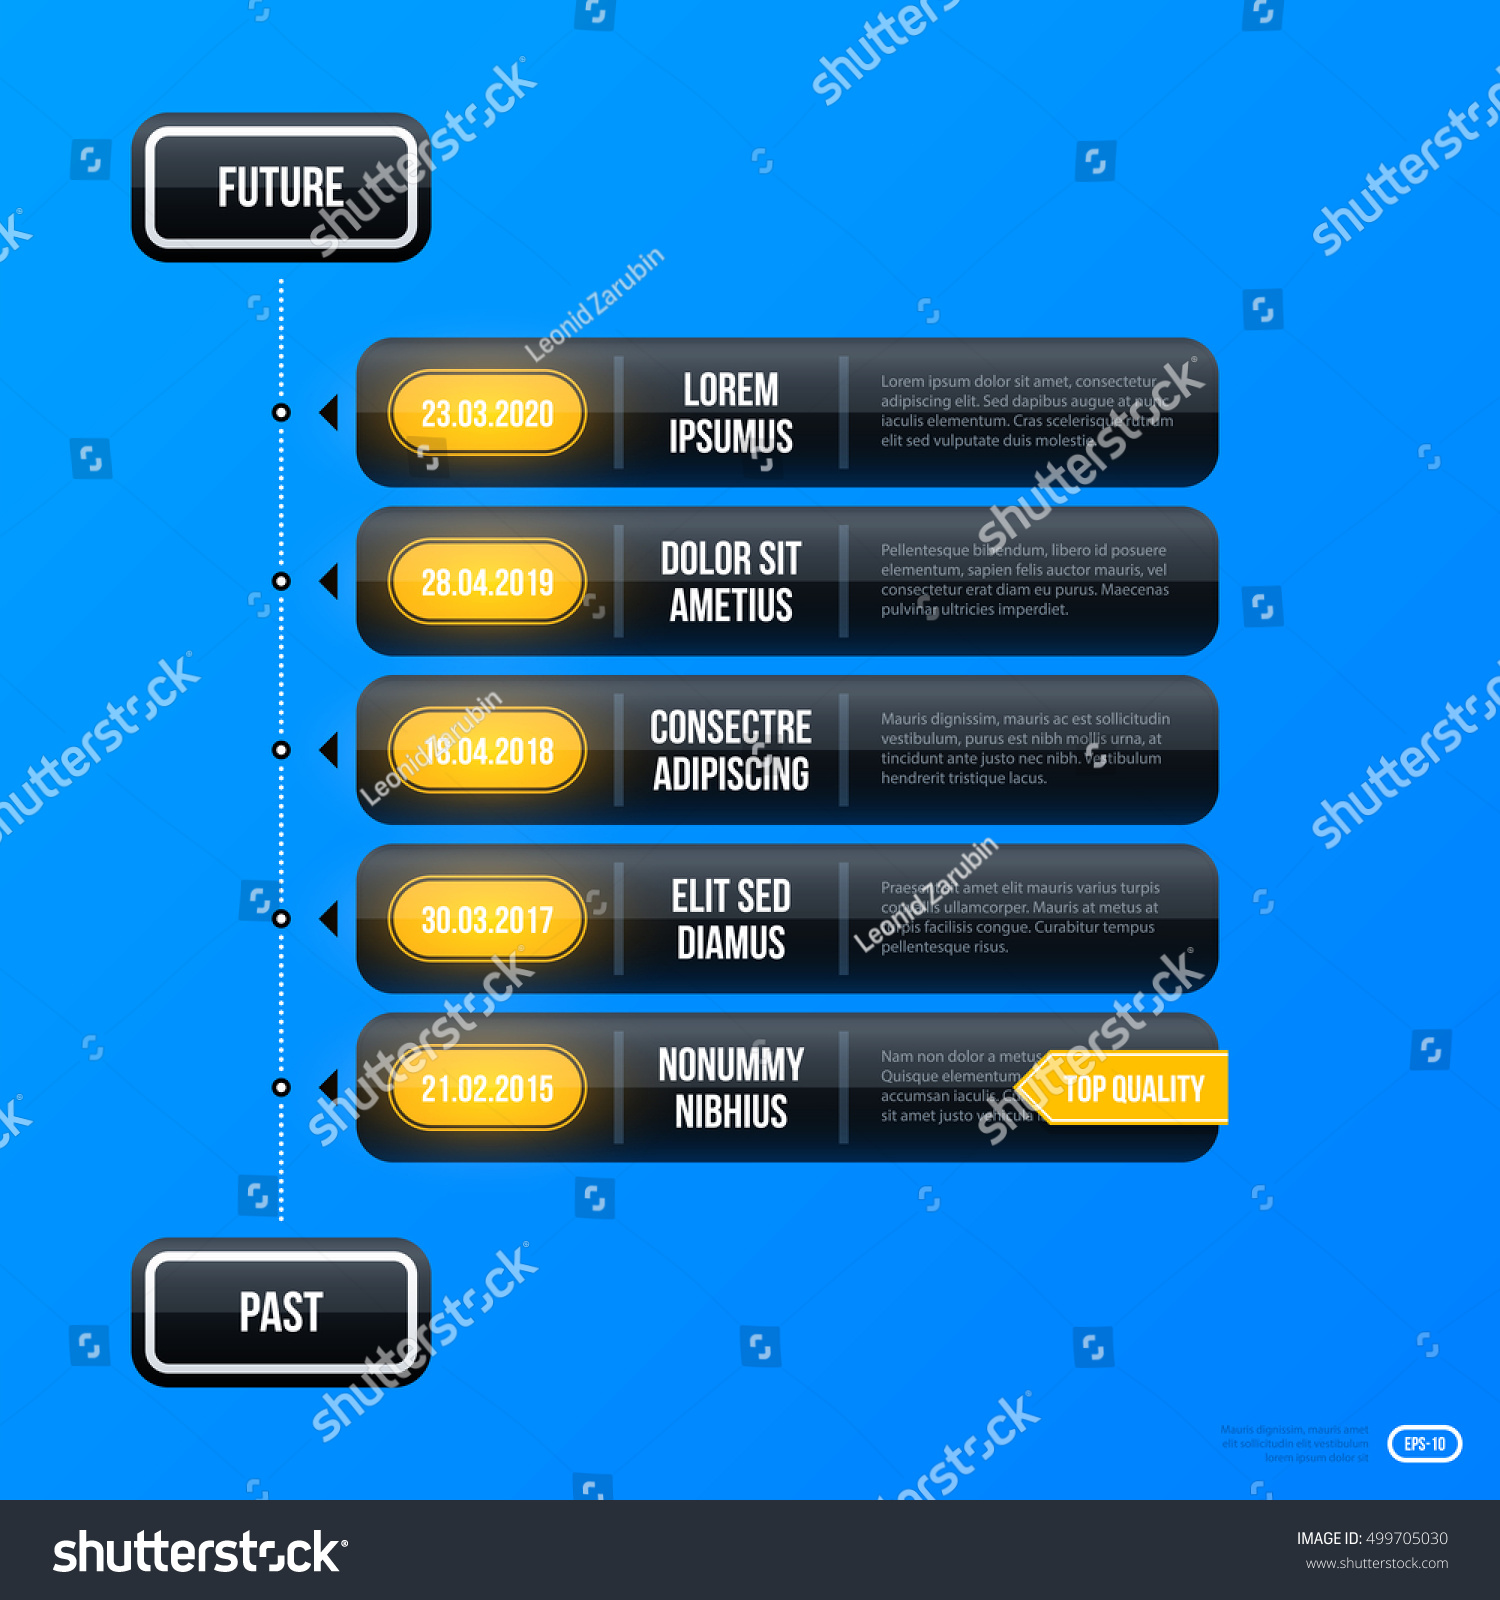 Corporate Business Timeline Template On Bright Blue Background. Useful For  Presentations And Advertising.